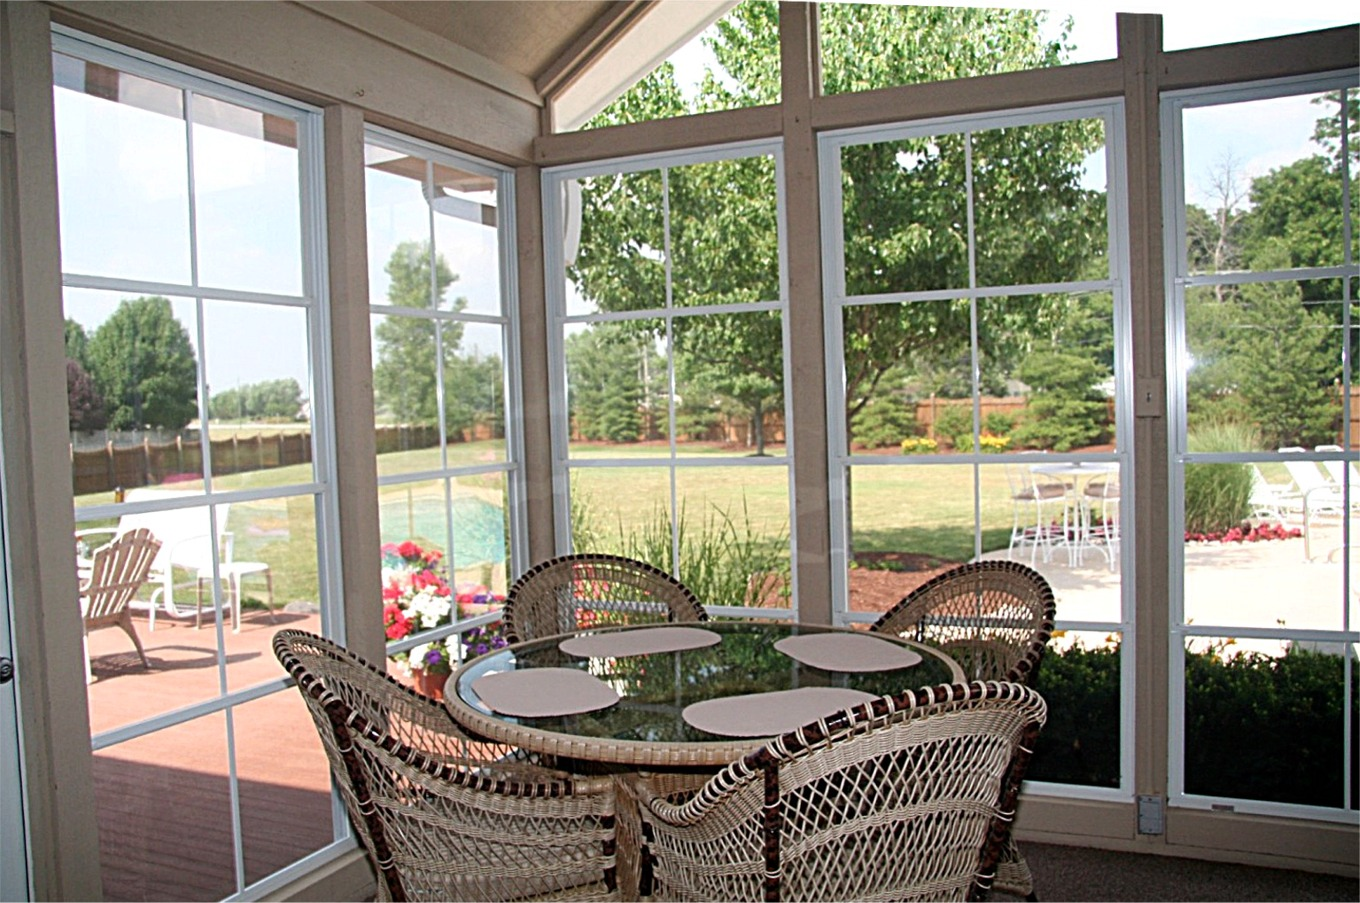 adhogg_builder_home_additions_sunroom-10